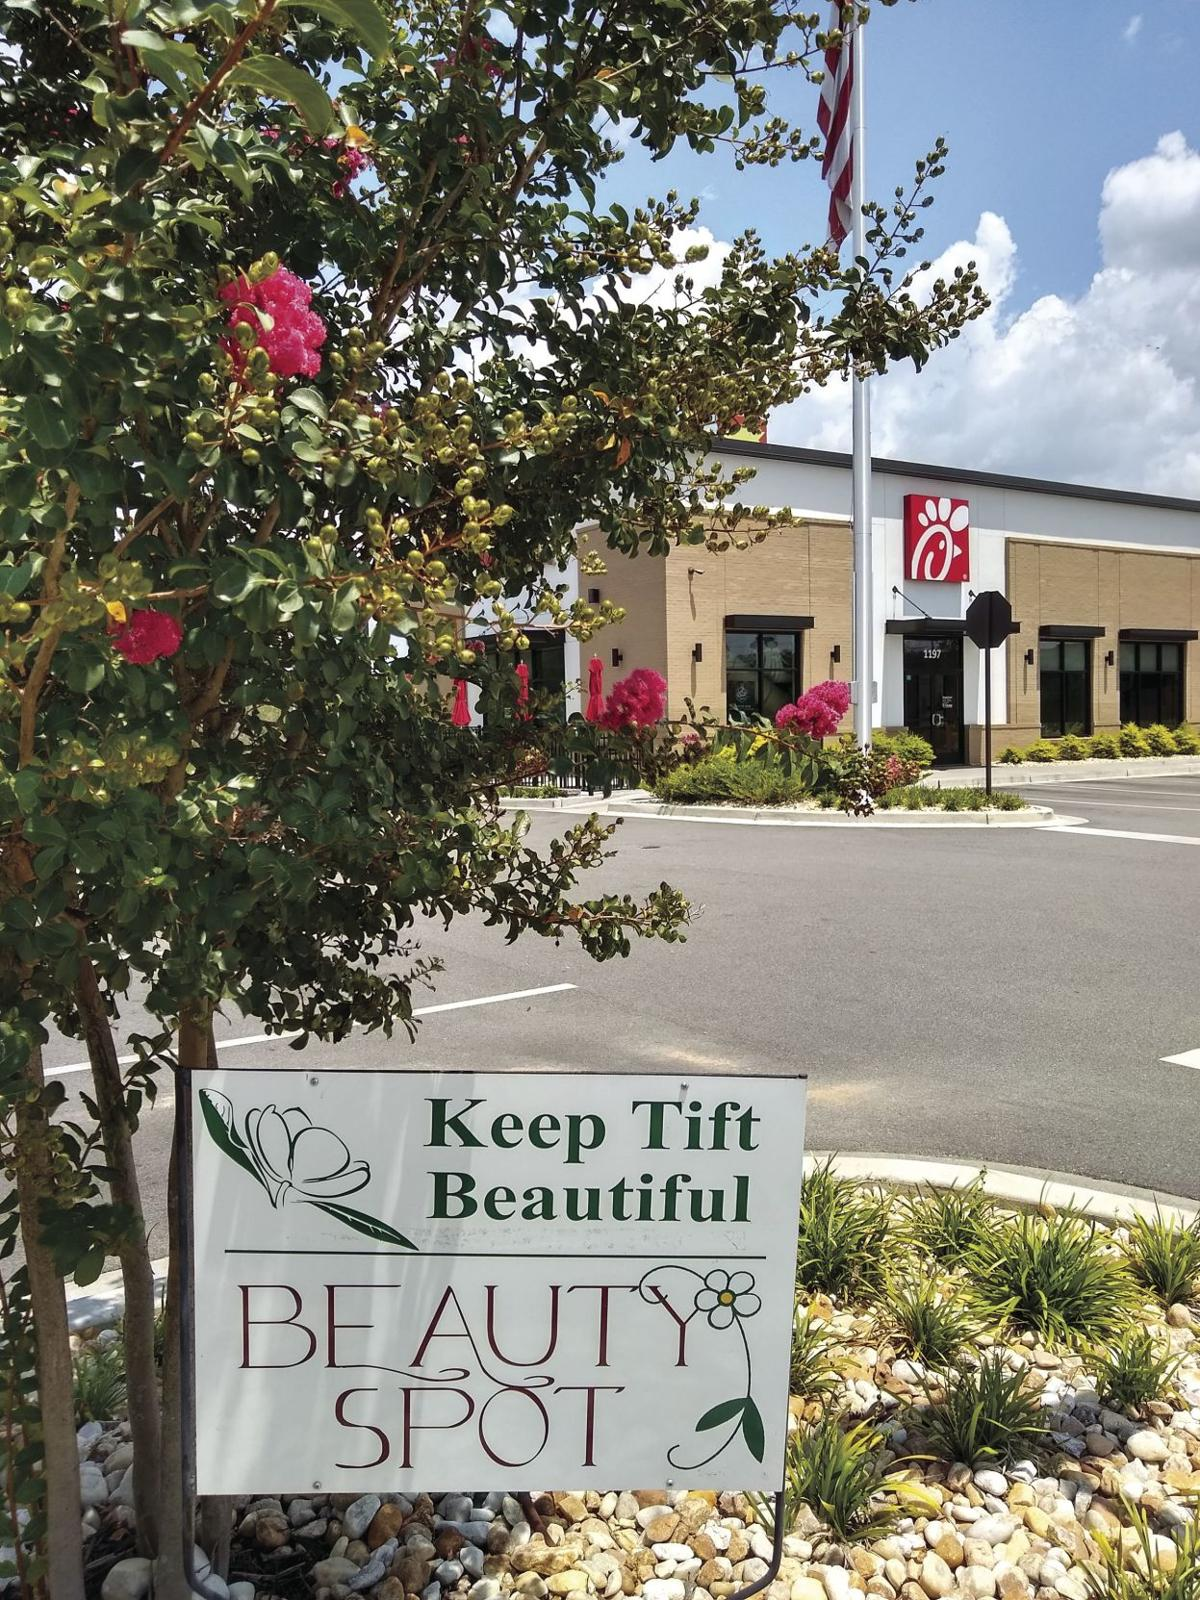 Keep Tift Beautiful is recognizing Chick-fil-A at 1197 GA-50 W., Hwy 82, Tifton as the commercial Beauty Spot winner.